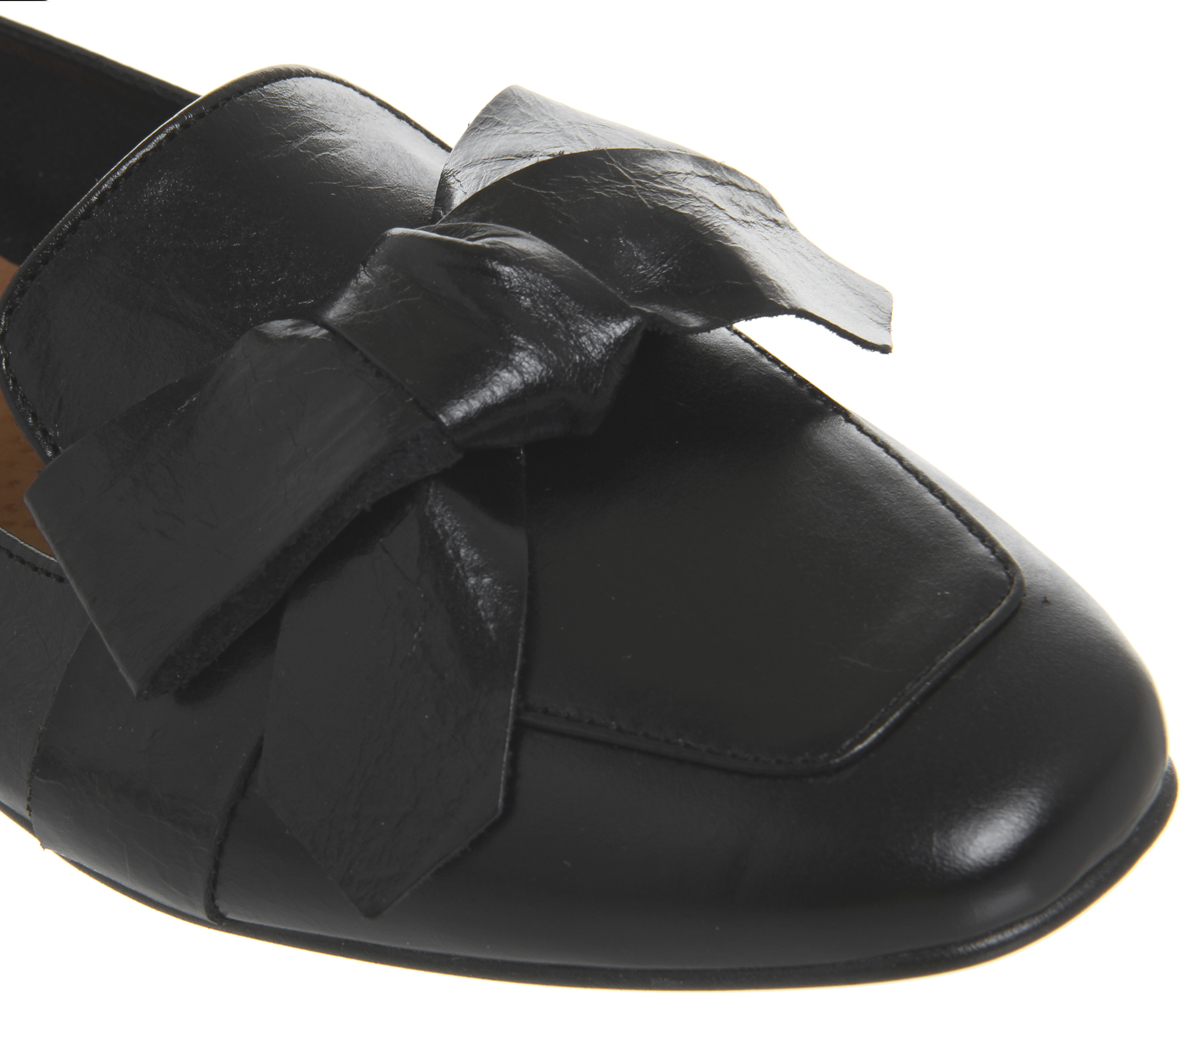 Womens Office Friend Square Toe Bow Loafers BLACK Flats LEATHER Flats BLACK 592b87